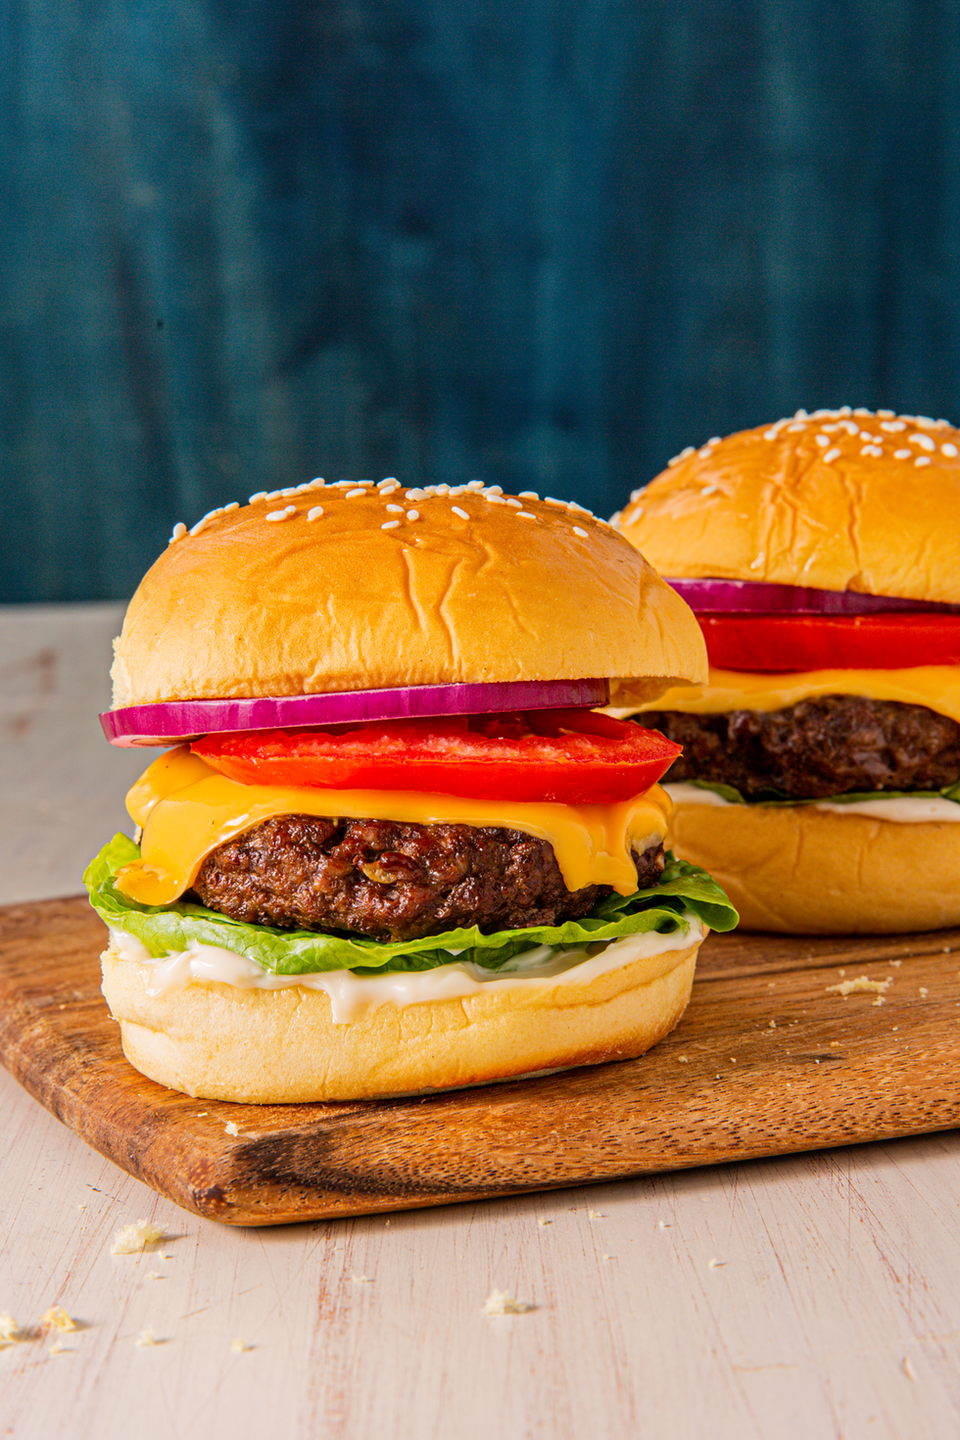 """<p>With the quick cook time, these <a href=""""https://www.delish.com/uk/cooking/recipes/g30993382/best-burger-recipes/"""" rel=""""nofollow noopener"""" target=""""_blank"""" data-ylk=""""slk:burgers"""" class=""""link rapid-noclick-resp"""">burgers</a> stay perfectly juicy and basically beg for a melty slice of cheese. Load it up with your favourite toppings and feel like the burger master you are - without all the smoke in your face. </p><p>Get the <a href=""""https://www.delish.com/uk/cooking/recipes/a32283836/air-fryer-hamburgers-recipe/"""" rel=""""nofollow noopener"""" target=""""_blank"""" data-ylk=""""slk:Air Fryer Cheeseburgers"""" class=""""link rapid-noclick-resp"""">Air Fryer Cheeseburgers</a> recipe.</p>"""